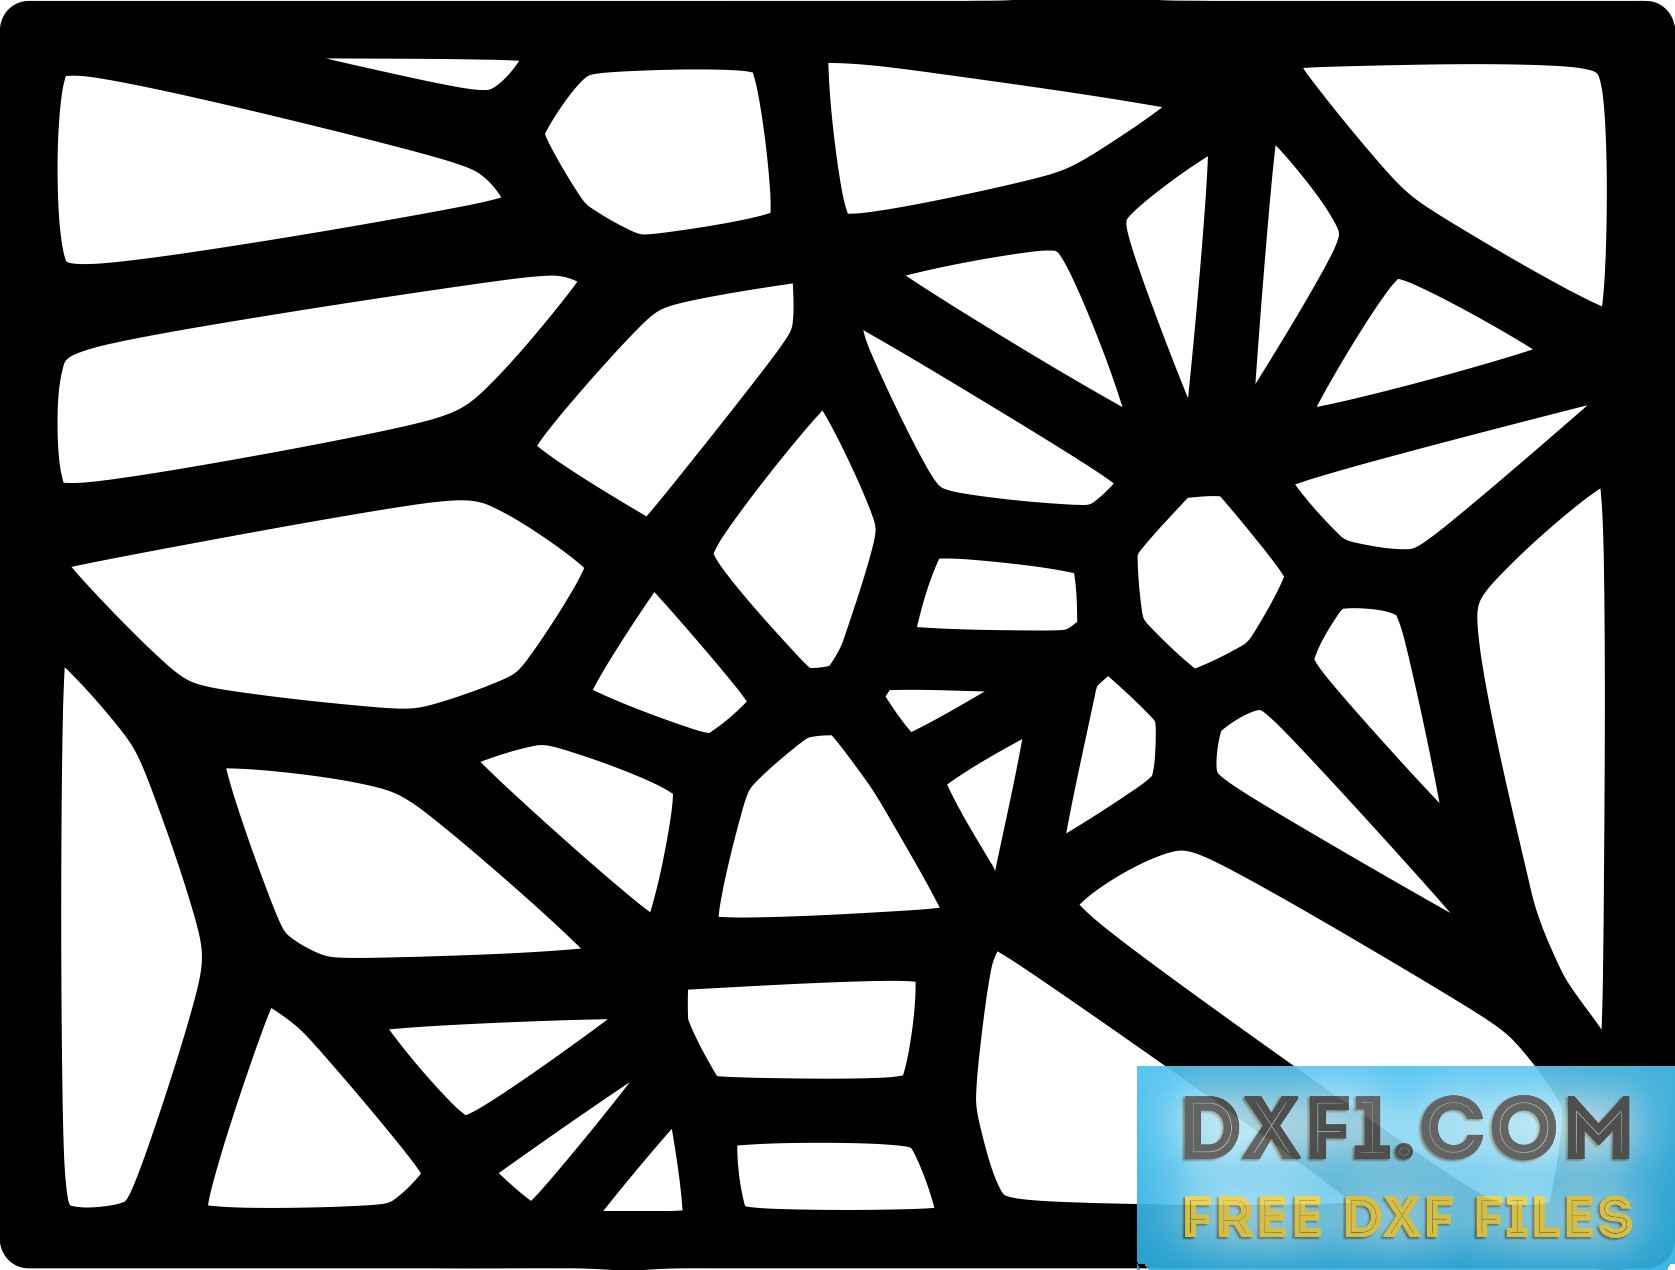 1675x1270 Cnc Files. Dxf Images. Dxf Art. Cut Files. Milling Files